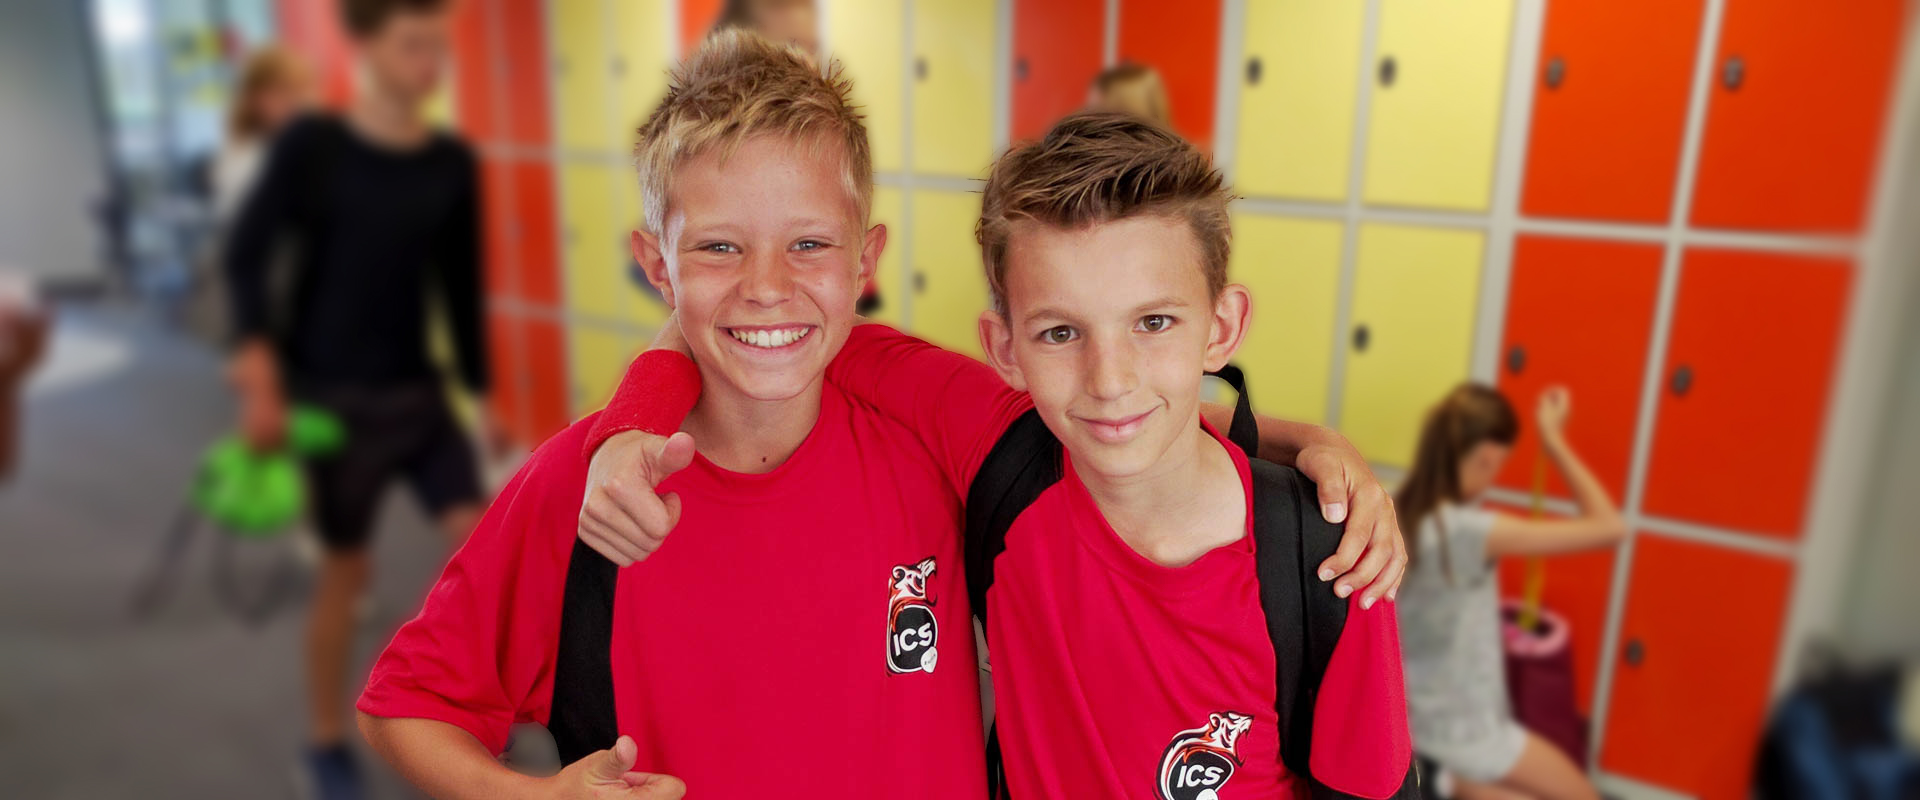 two students wearing house t-shirts, international school